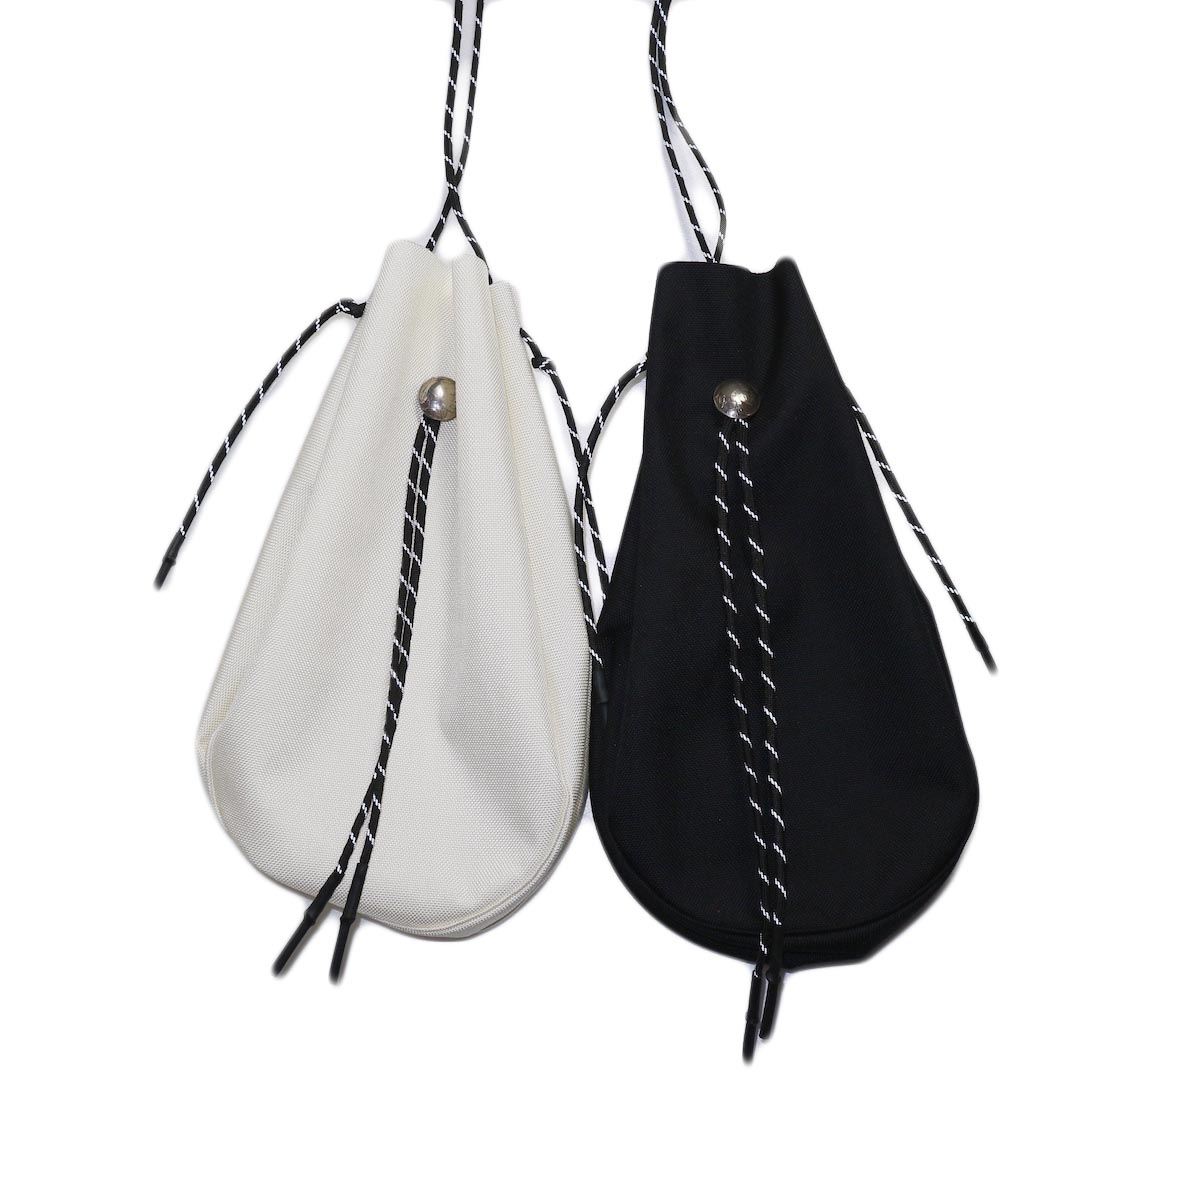 吉岡衣料店 / drawstring bag -L-. w/concho. white 2色